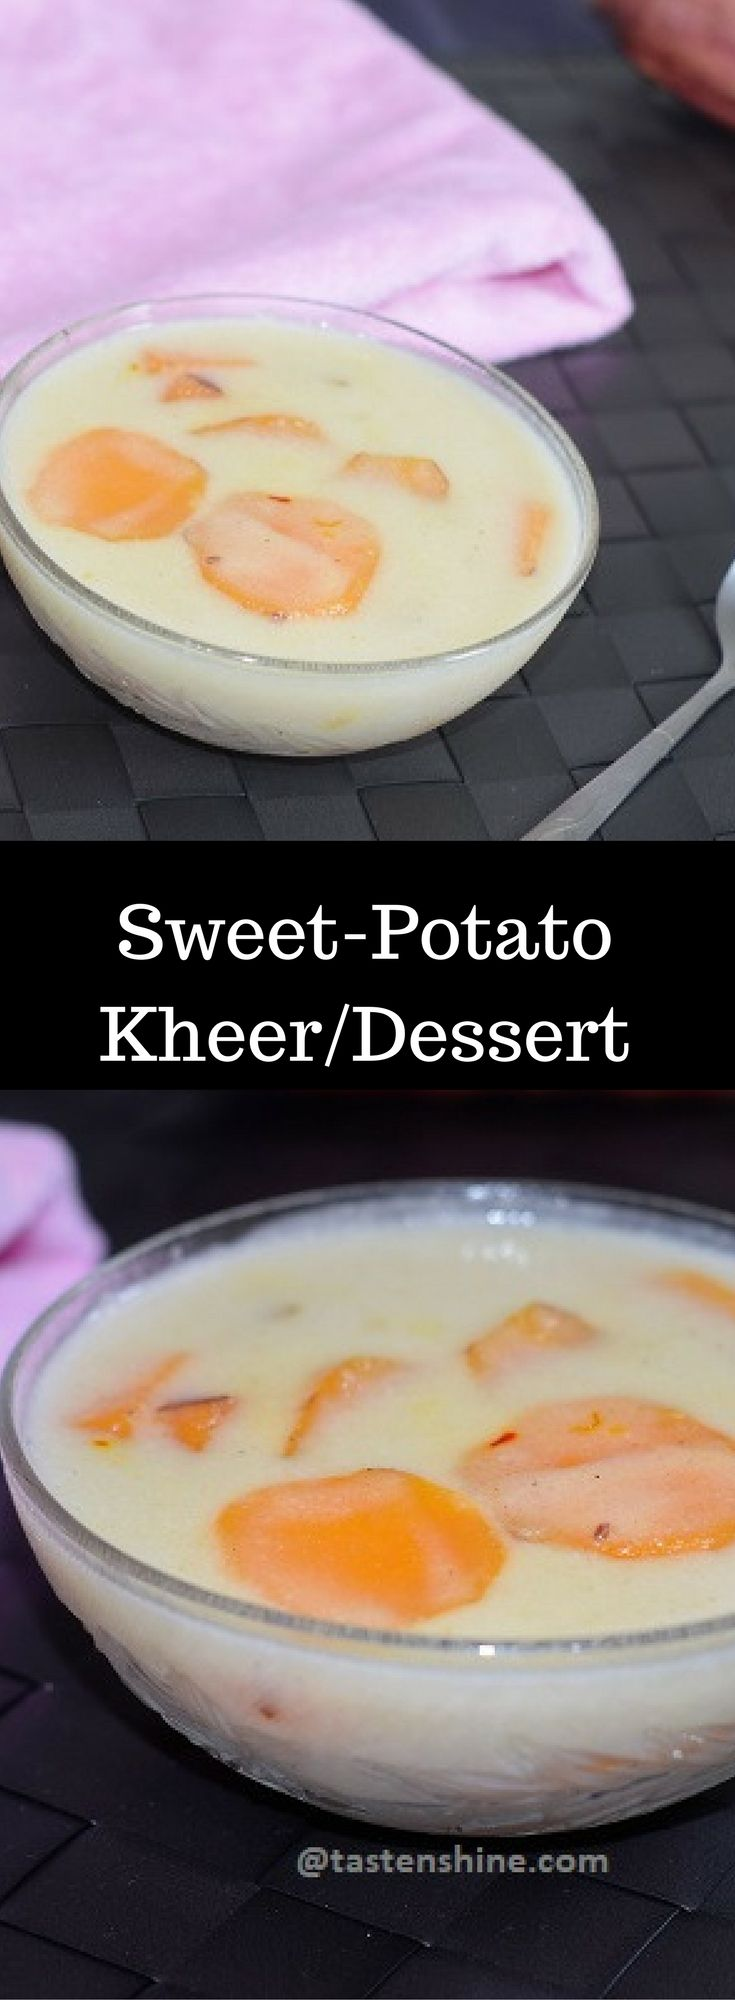 Sweet Potato Kheer is an authentic recipe from Goa, a coastal state in India. Simple and easy to make coconut milk based recipe with just 5 ingredients